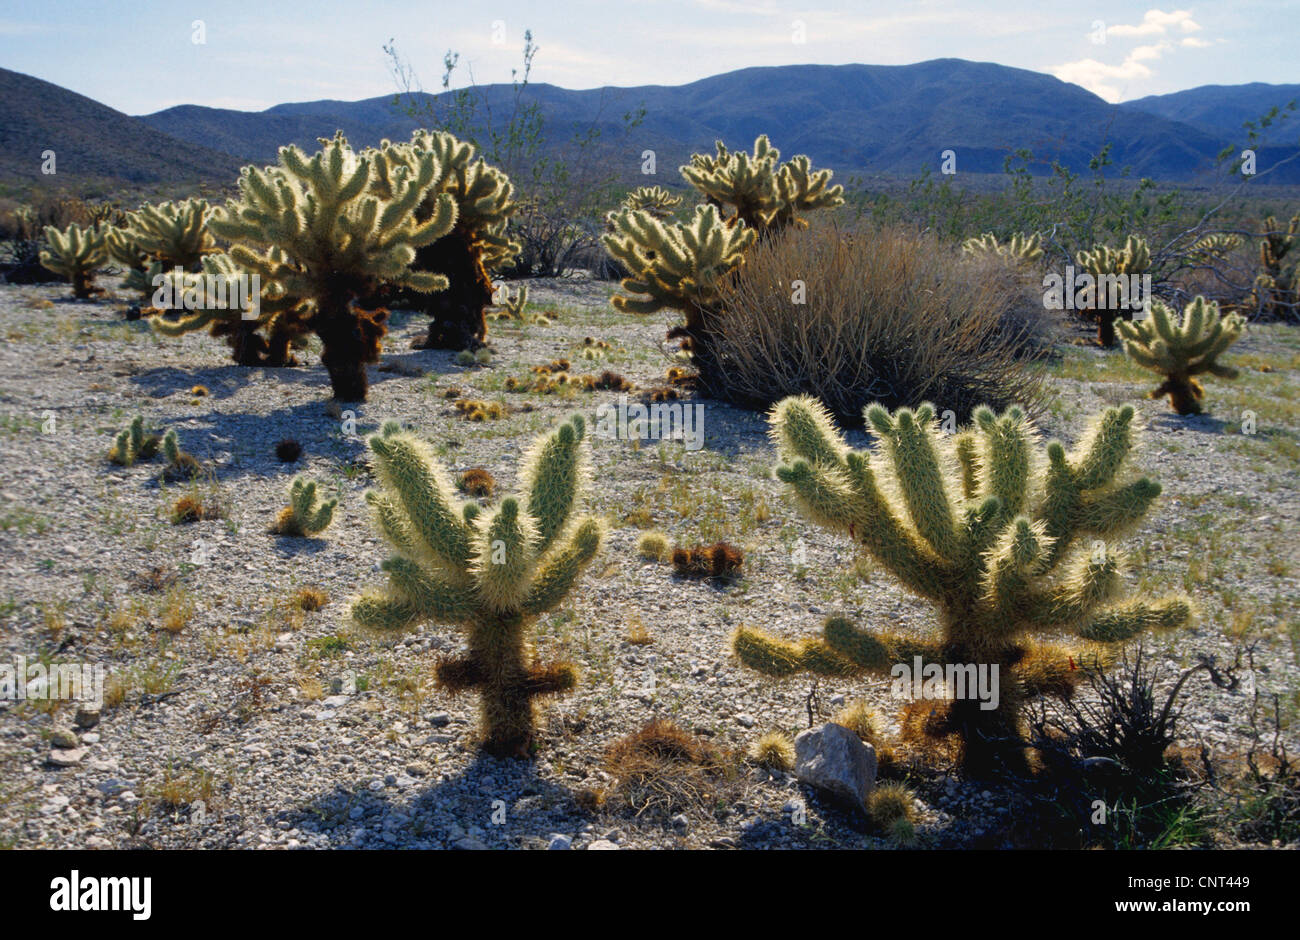 Chain Fruit Cholla, Jumping Cholla, Hanging Chain Cholla, Sonora Jumping Cholla  (Opuntia fulgida, Cylindropuntia - Stock Image